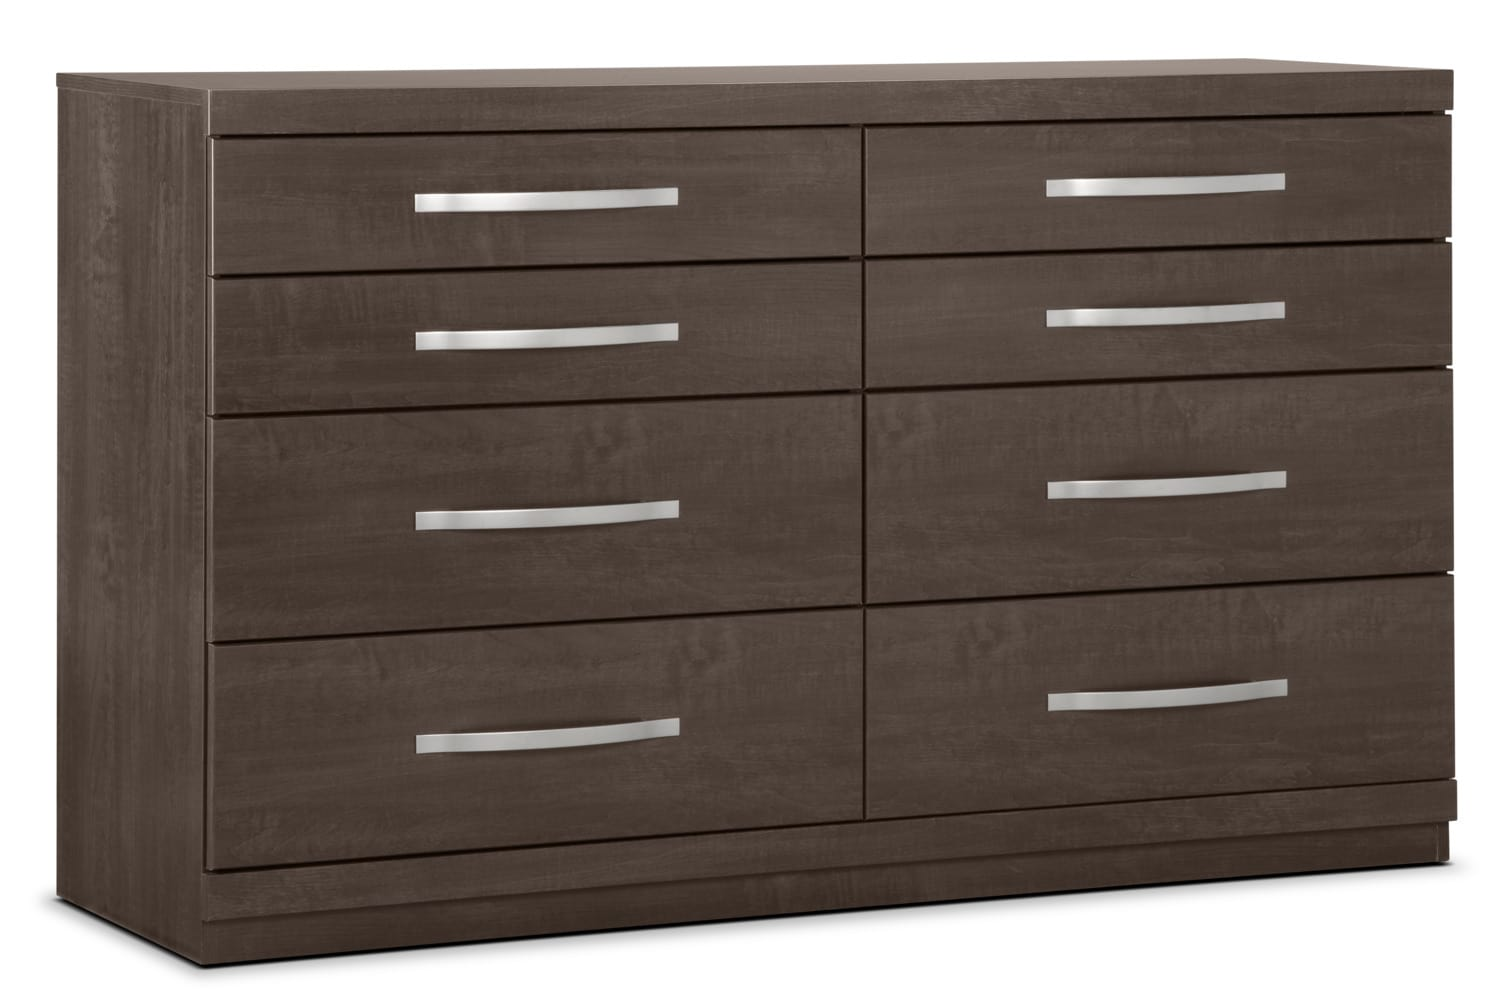 Bedroom Furniture - Willowdale Dresser